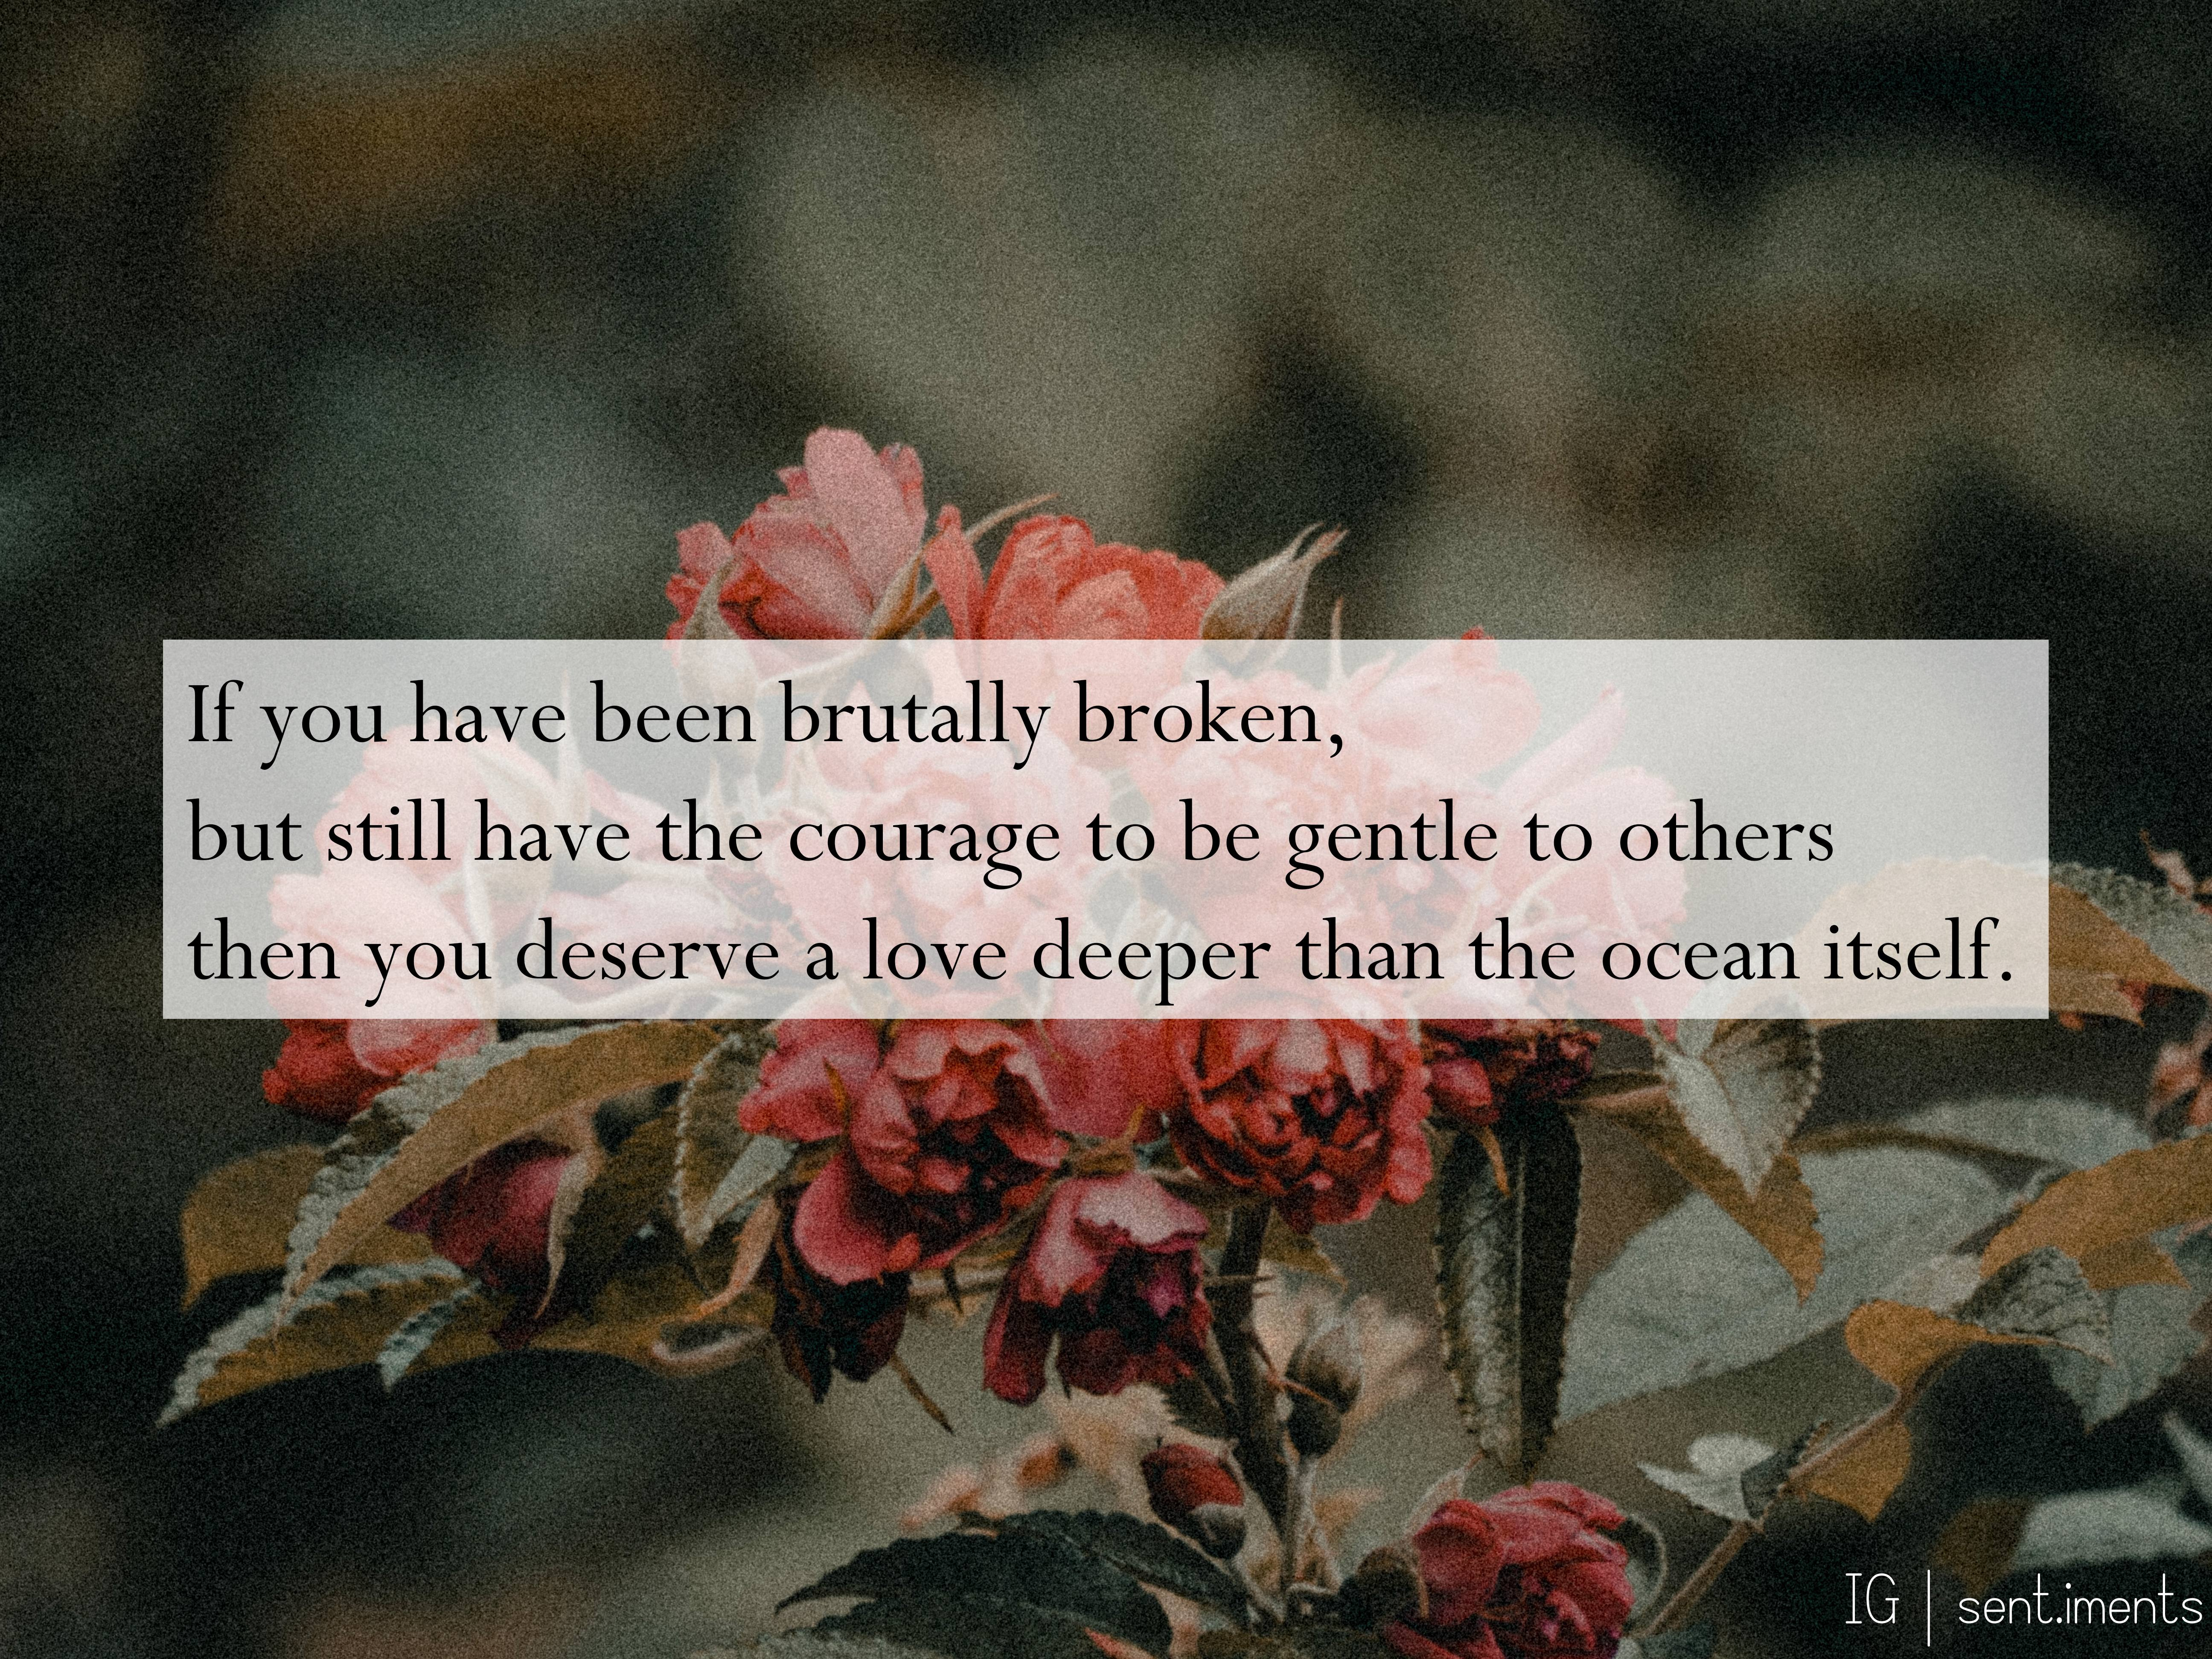 """If you have been brutally broken, but still have the courage to be gentle to others then you deserve a love deeper than the ocean itself."" By Nikita Gill [5184 X 3888]"